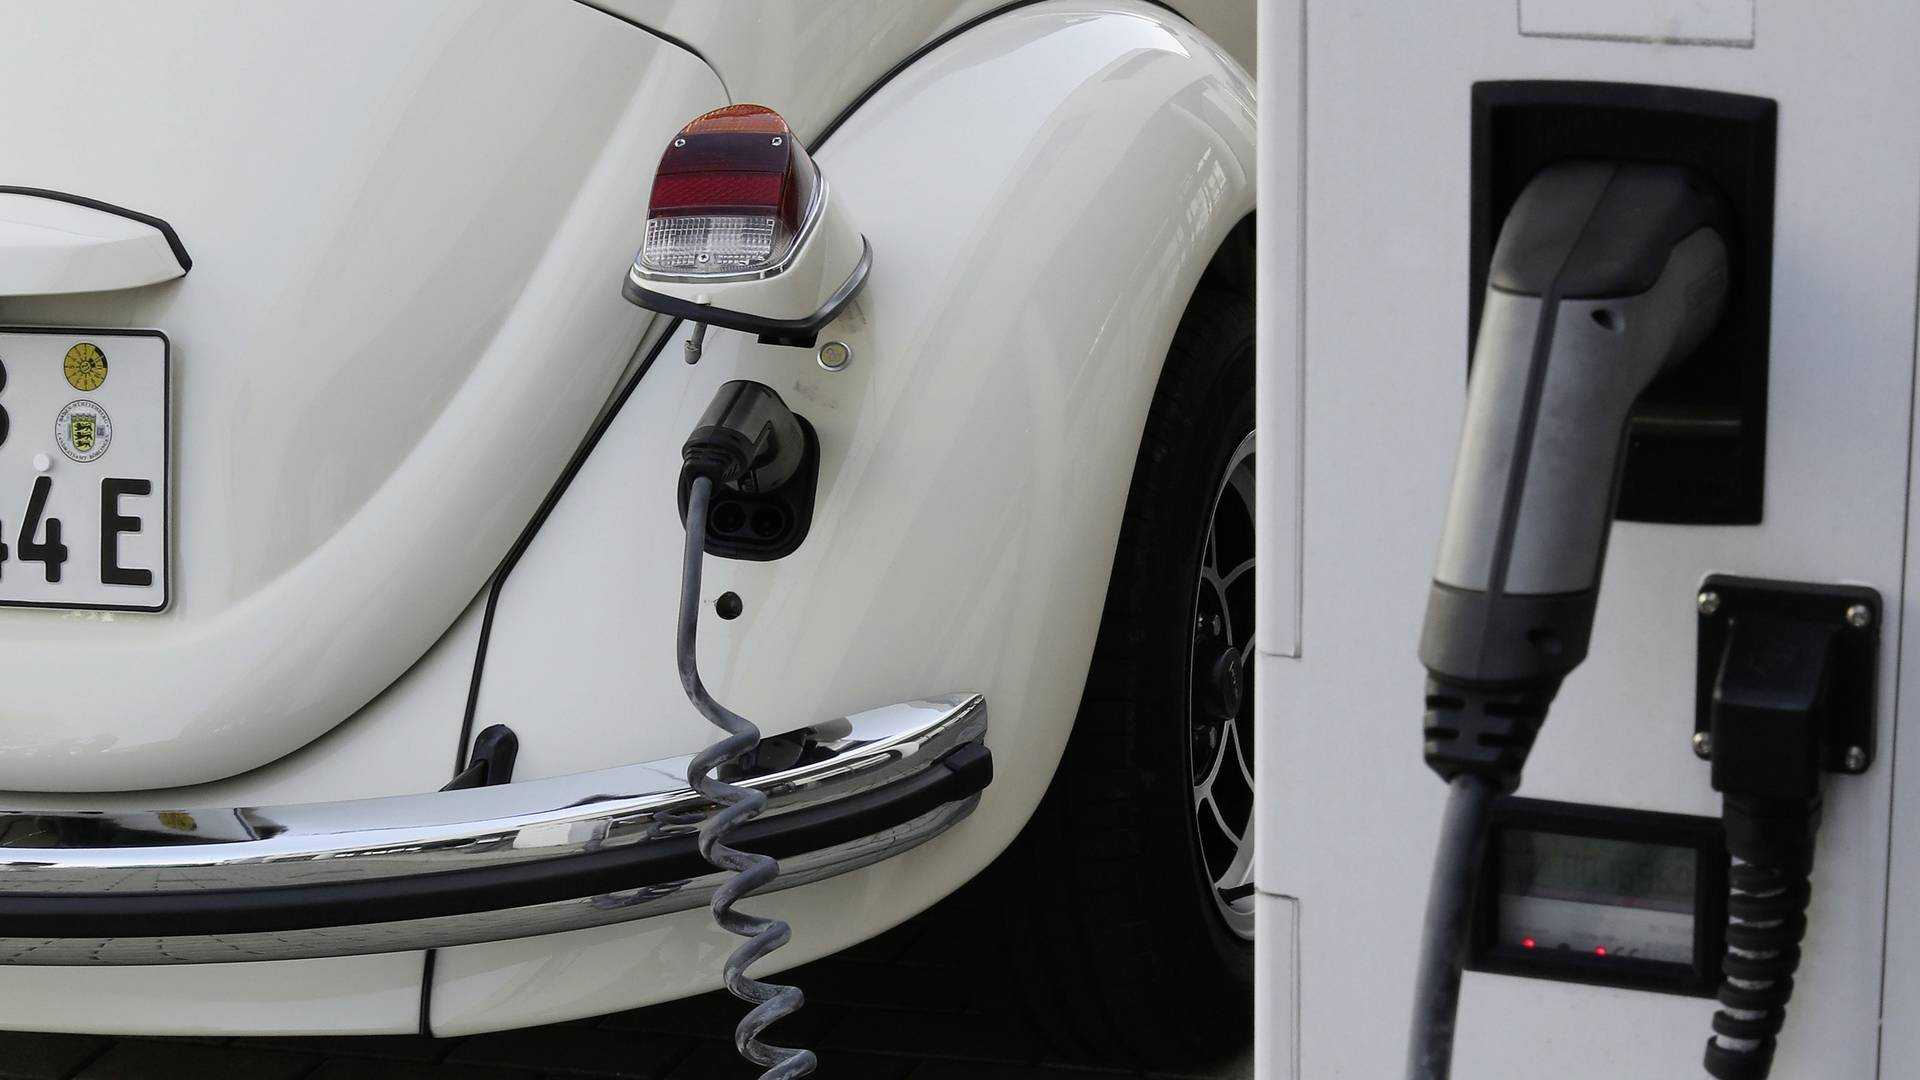 Original Beetle gets a proper boot thanks to VW e-Up! battery